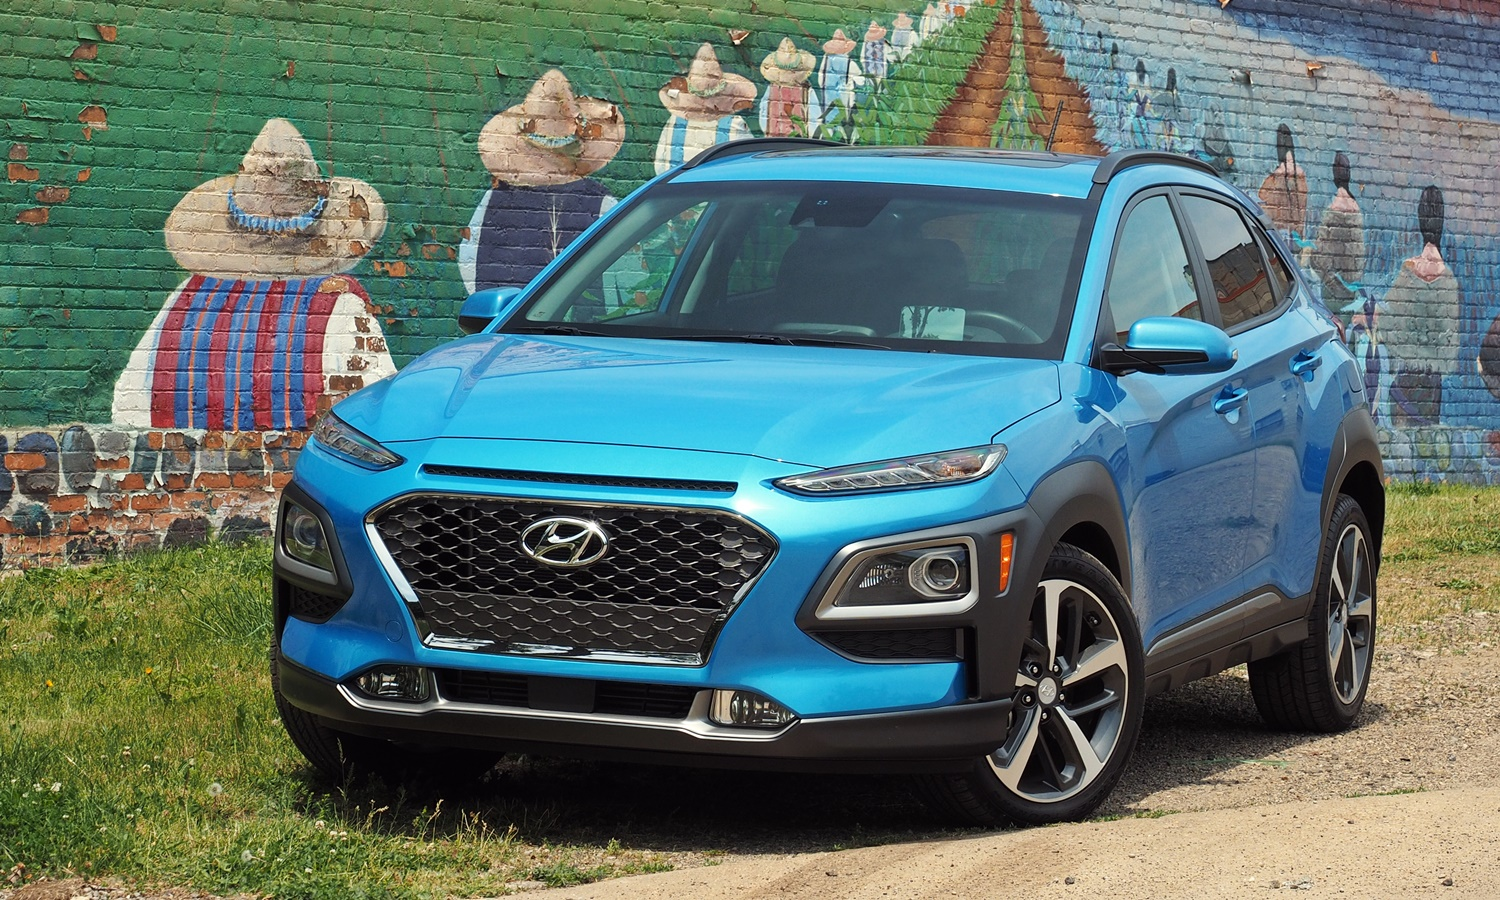 Kona Reviews: 2018 Hyundai Kona front angle view